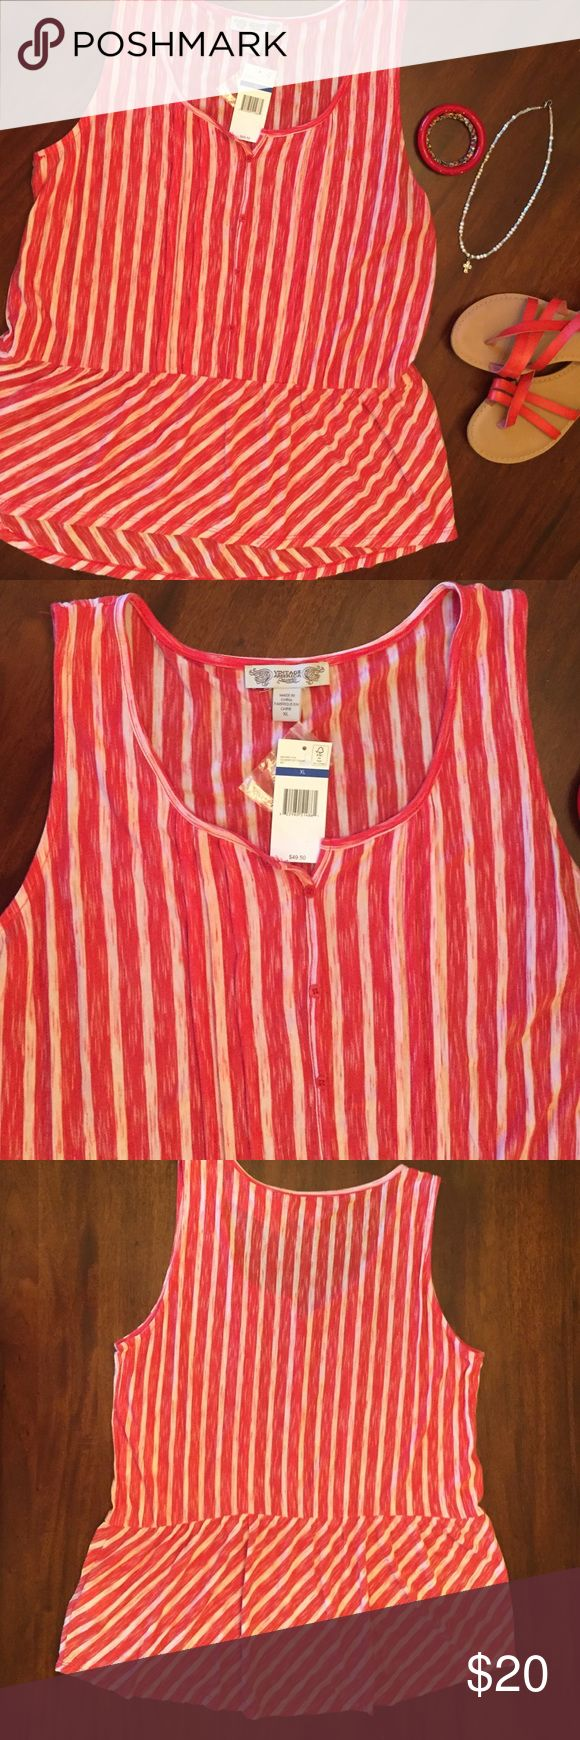 "NWT Cute red and white tank NWT Vintage America Blues red and white sleeveless tank with tucks and buttons on front and peplum bottom. Would be cute with blue bandeau or tank underneath. Made of 59% polyester- 41% viscose. Measures 20"" pit to pit and approx 27 1/2"" in length. Vintage America Blues Tops Tank Tops"